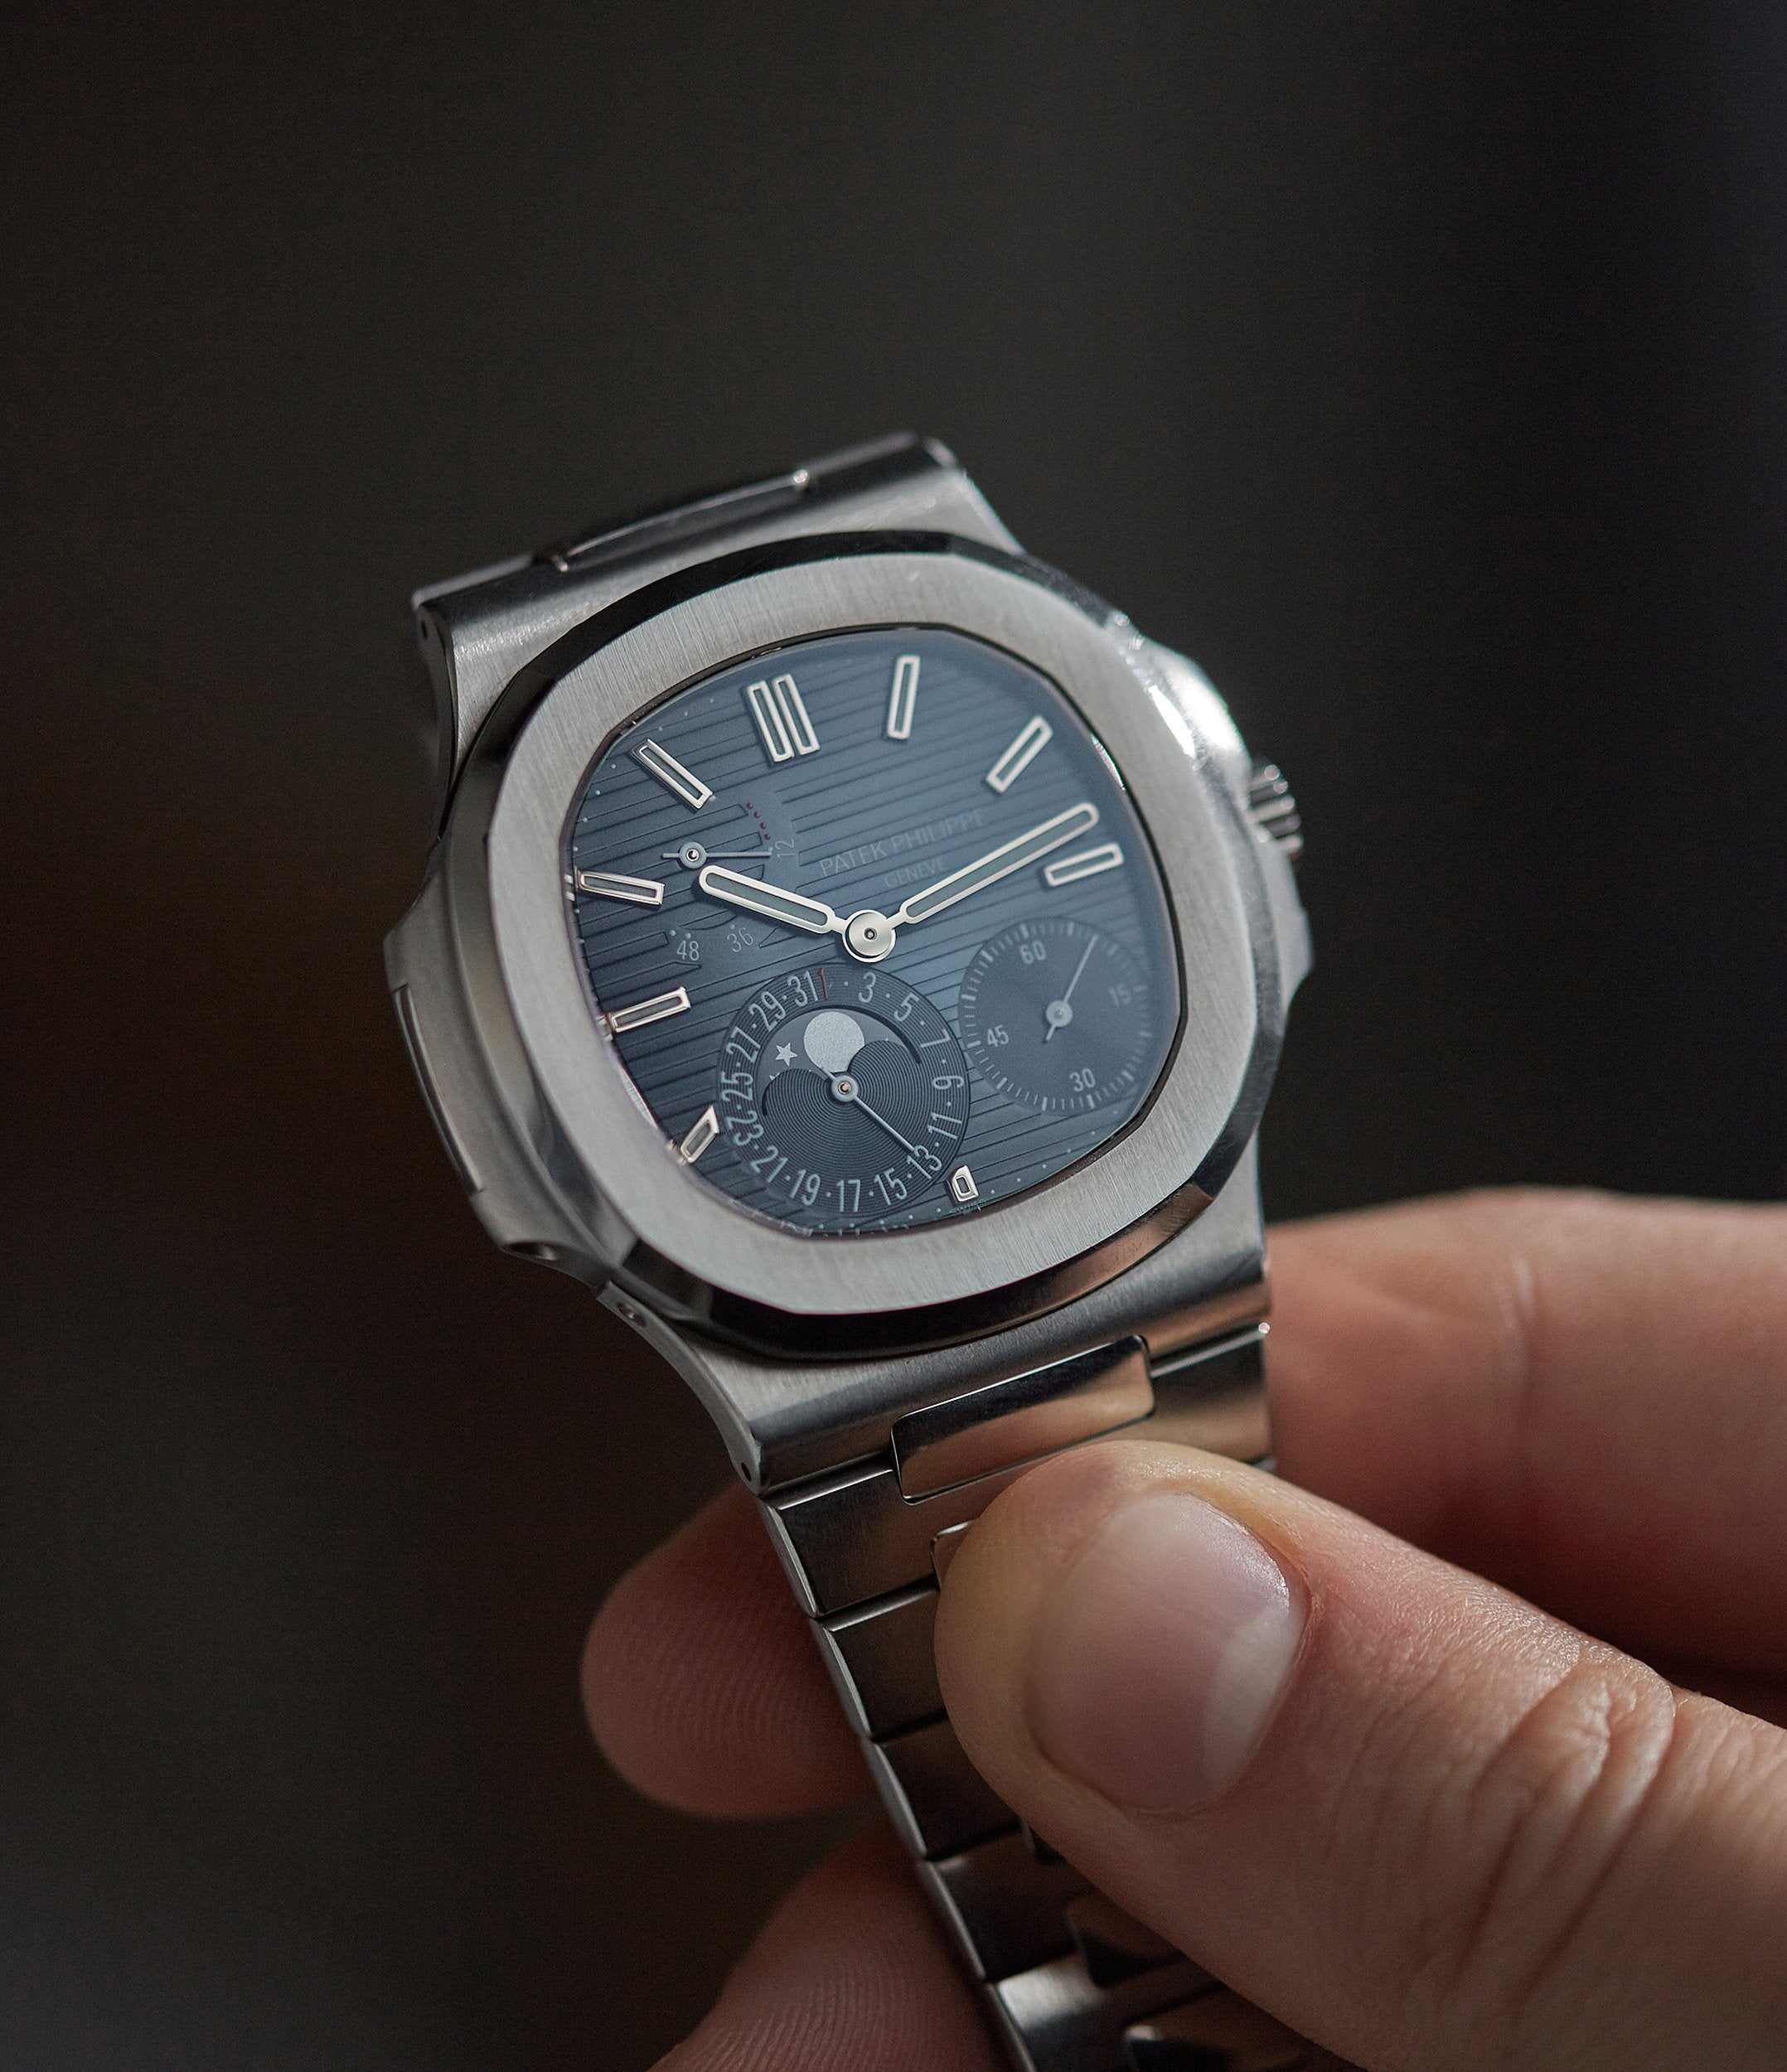 5712 Patek Philippe Nautilus 5712/1A-001 steel moon phase luxury sports watch for sale online A Collected Man London UK specialist rare watches